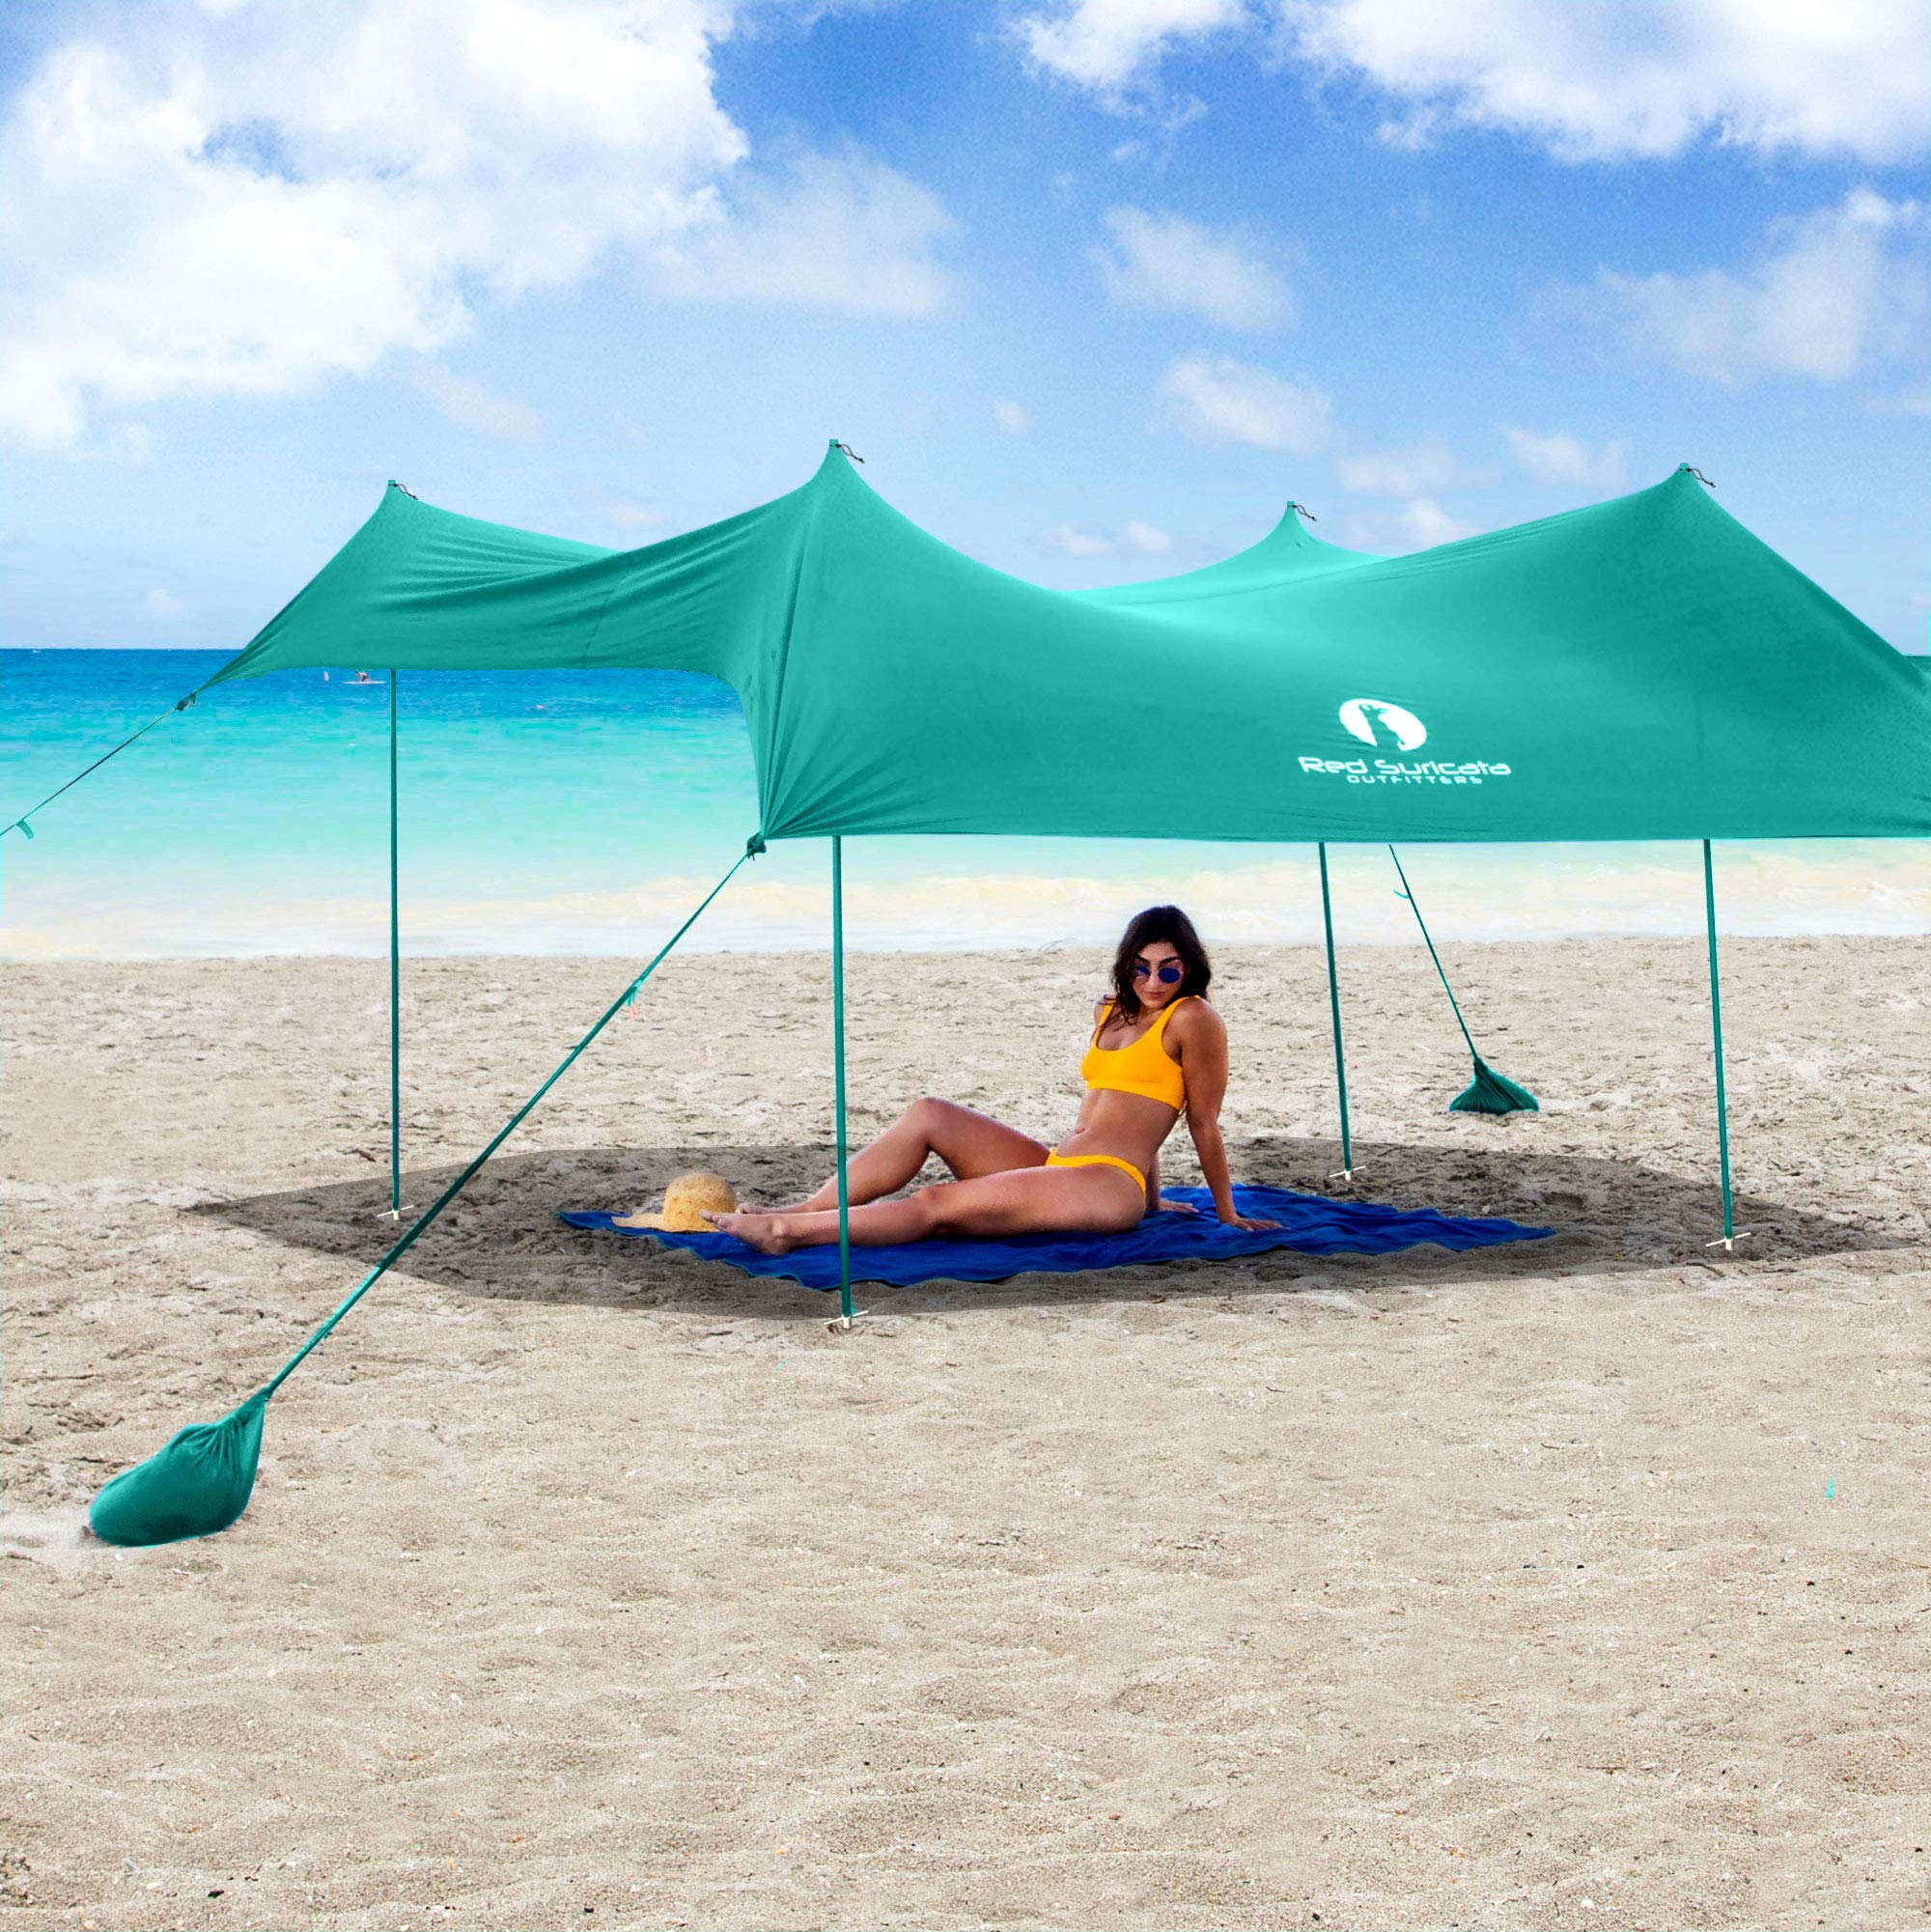 Red Suricata Family Beach Sunshade - Sun Shade Canopy | UPF50 UV Protection | Tent with 4 Aluminum Poles, 4 Pole Anchors, 4 Sandbag Anchors | Large & Portable Shelter Tarp (Turquoise, Large) by Red Suricata